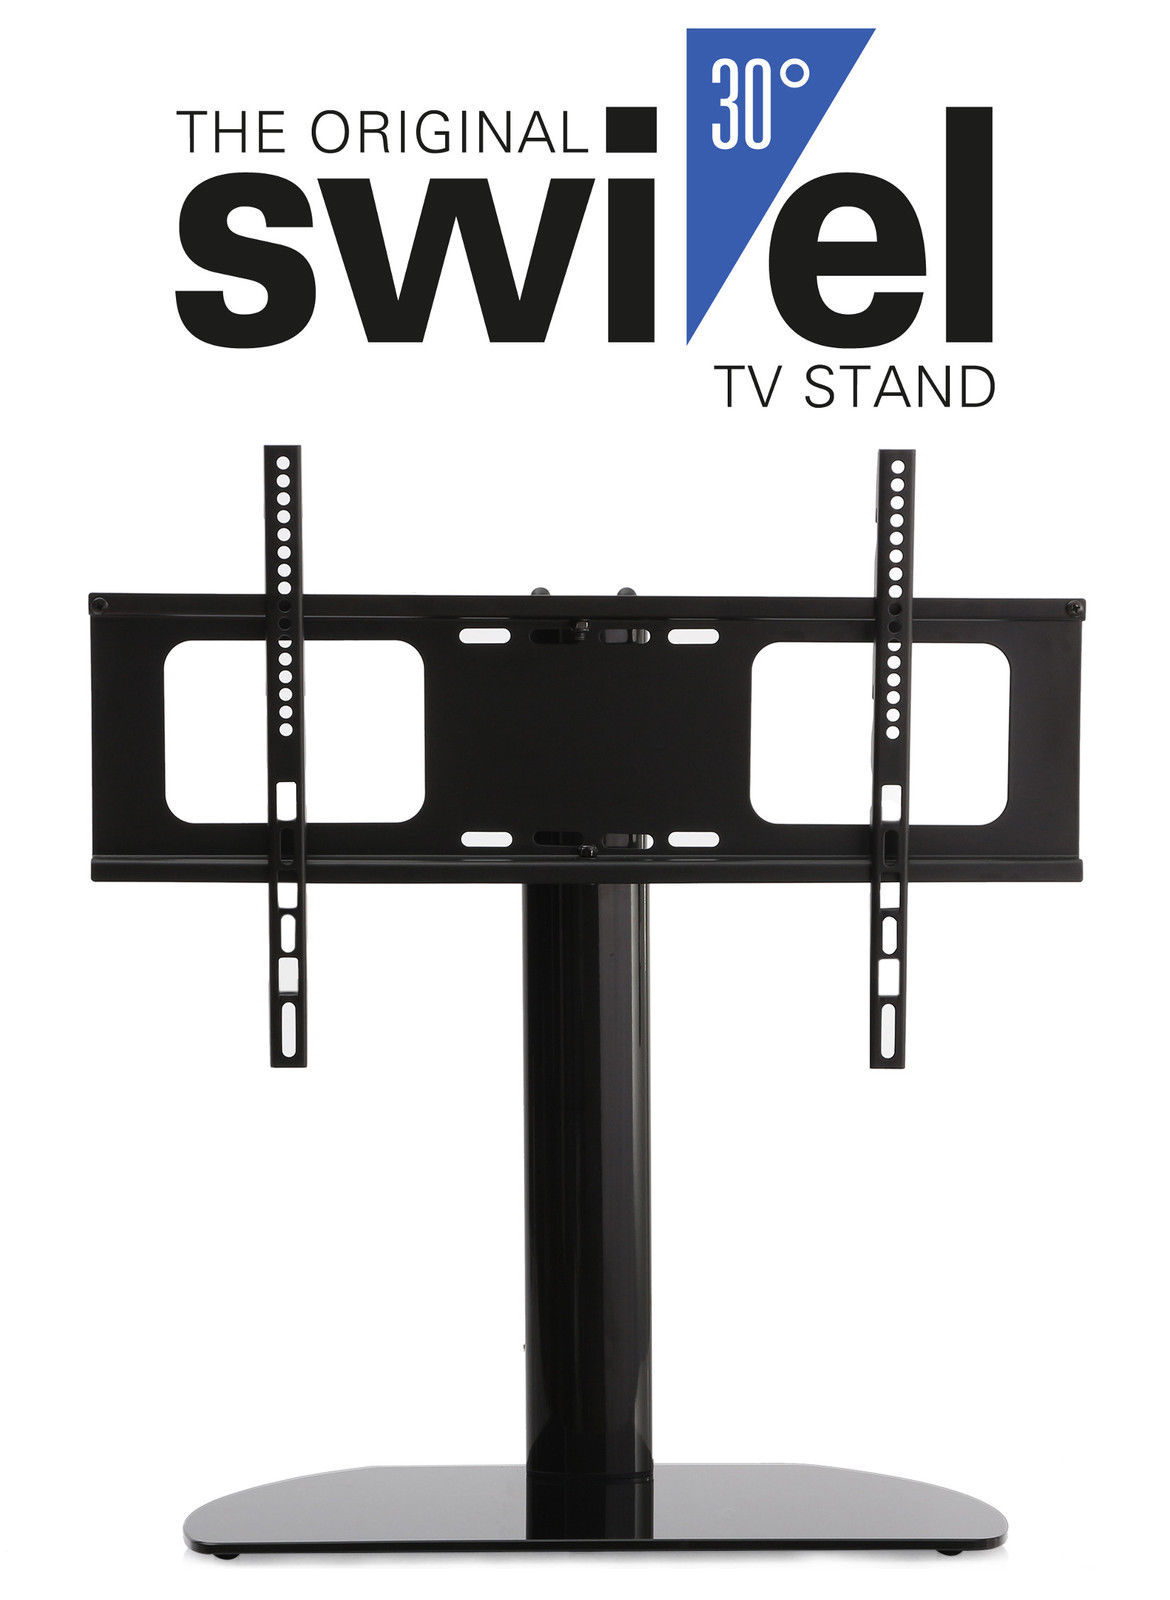 New Replacement Swivel TV Stand / Base for Vizio M420SL